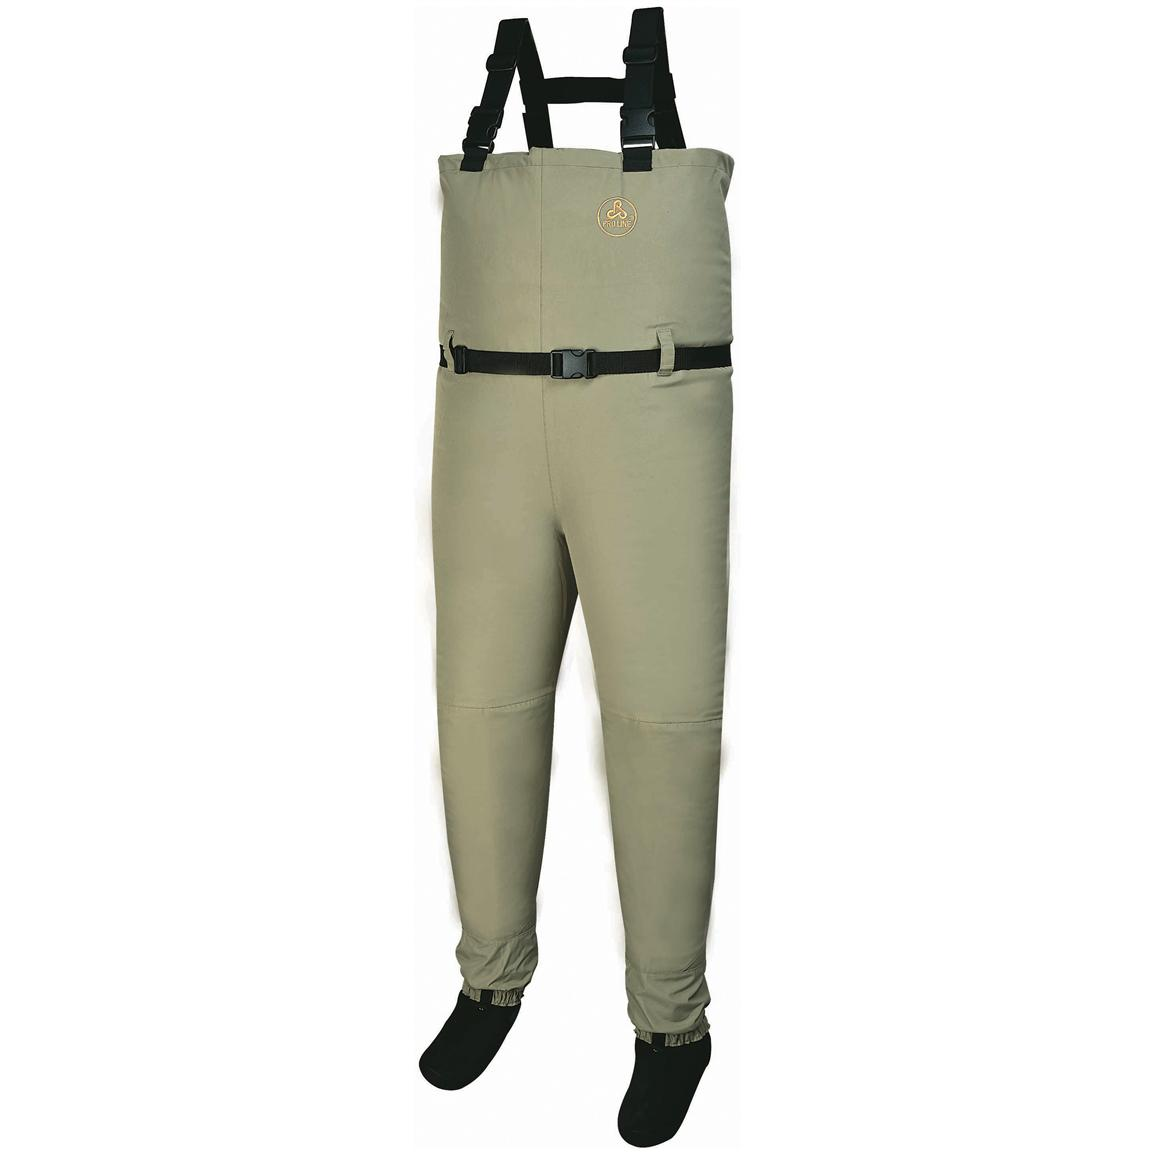 Pro Line® Men's Wallkill Breathable Chest Waders, Stocking Foot.